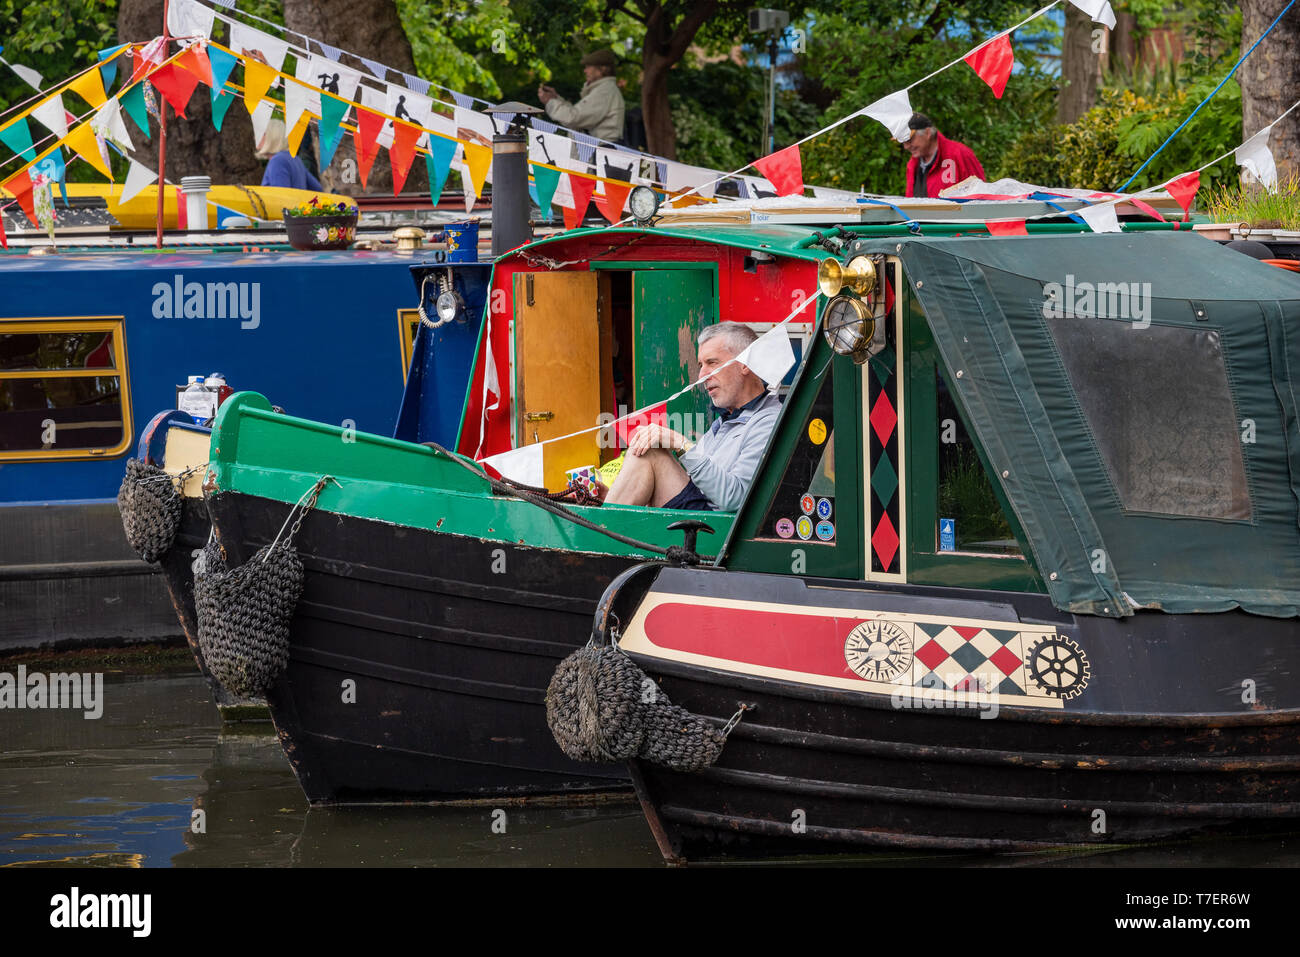 Inland Waterways Canalway Cavalcade Festival 2019, Little Venice, Paddington, London, UK. Over 100 narrowboats took part, attracting large crowds. Stock Photo